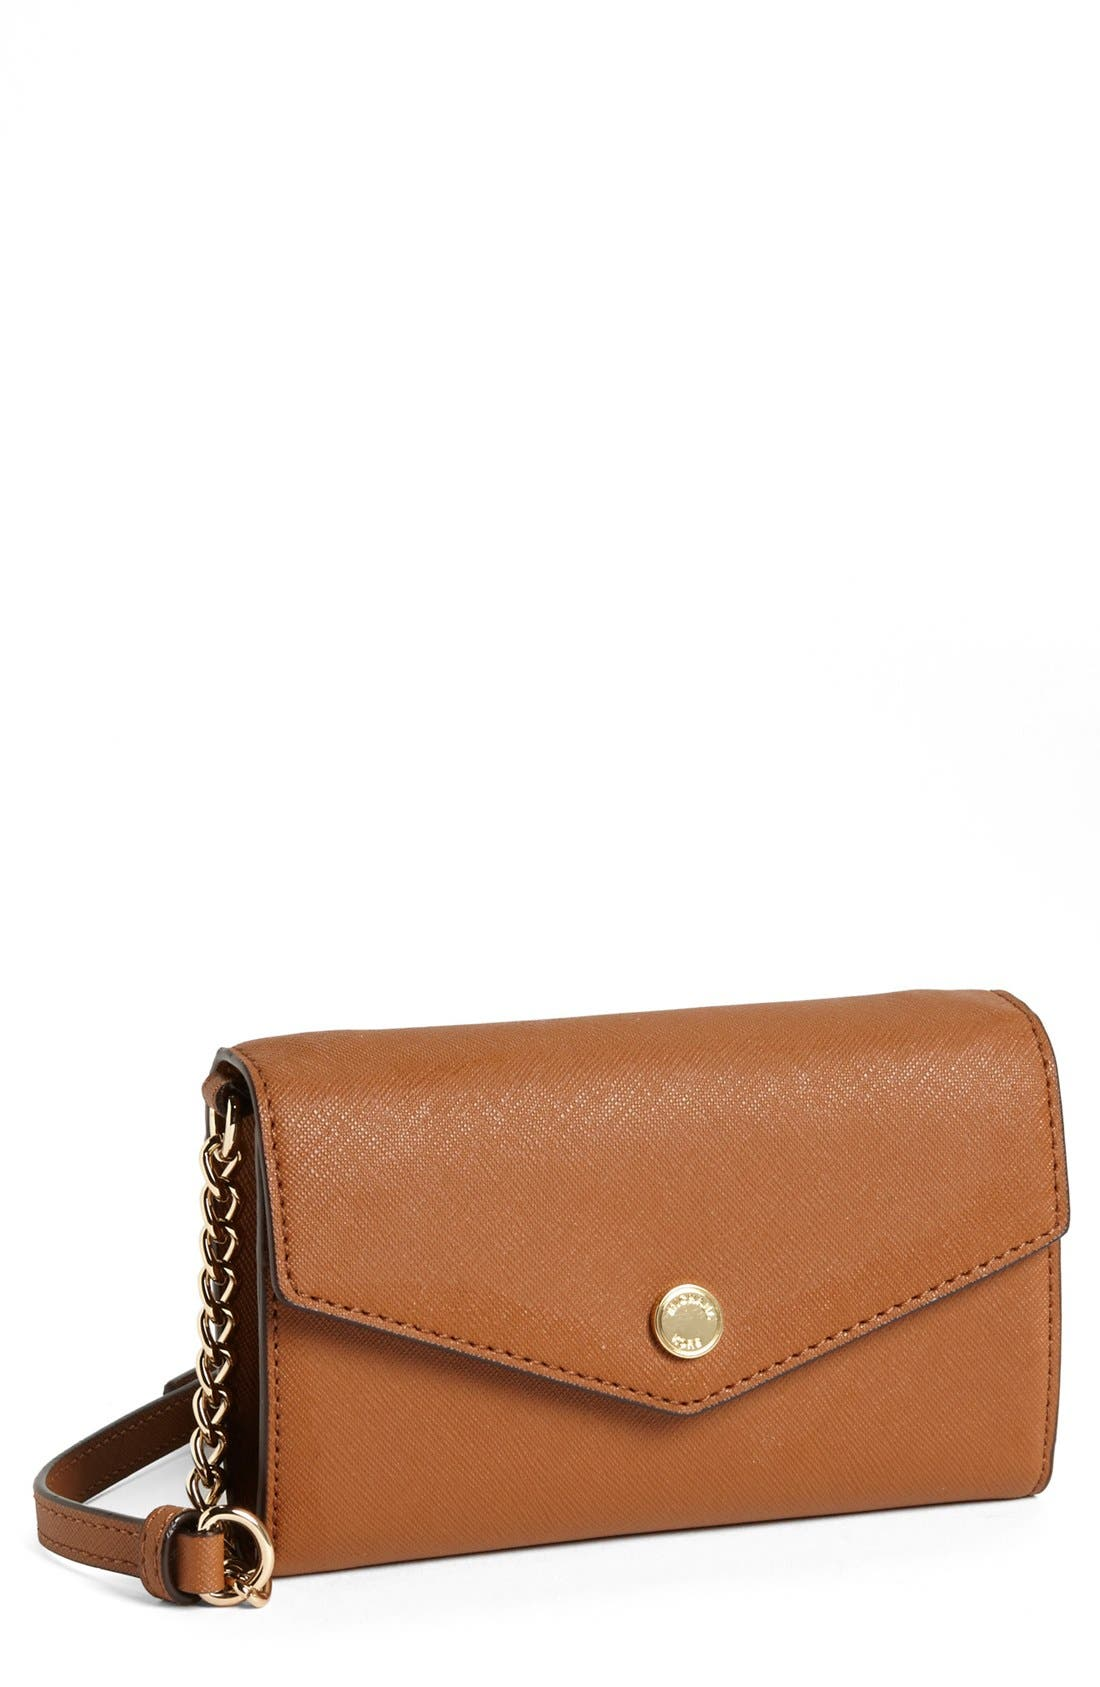 Main Image - MICHAEL Michael Kors Crossbody Phone Bag